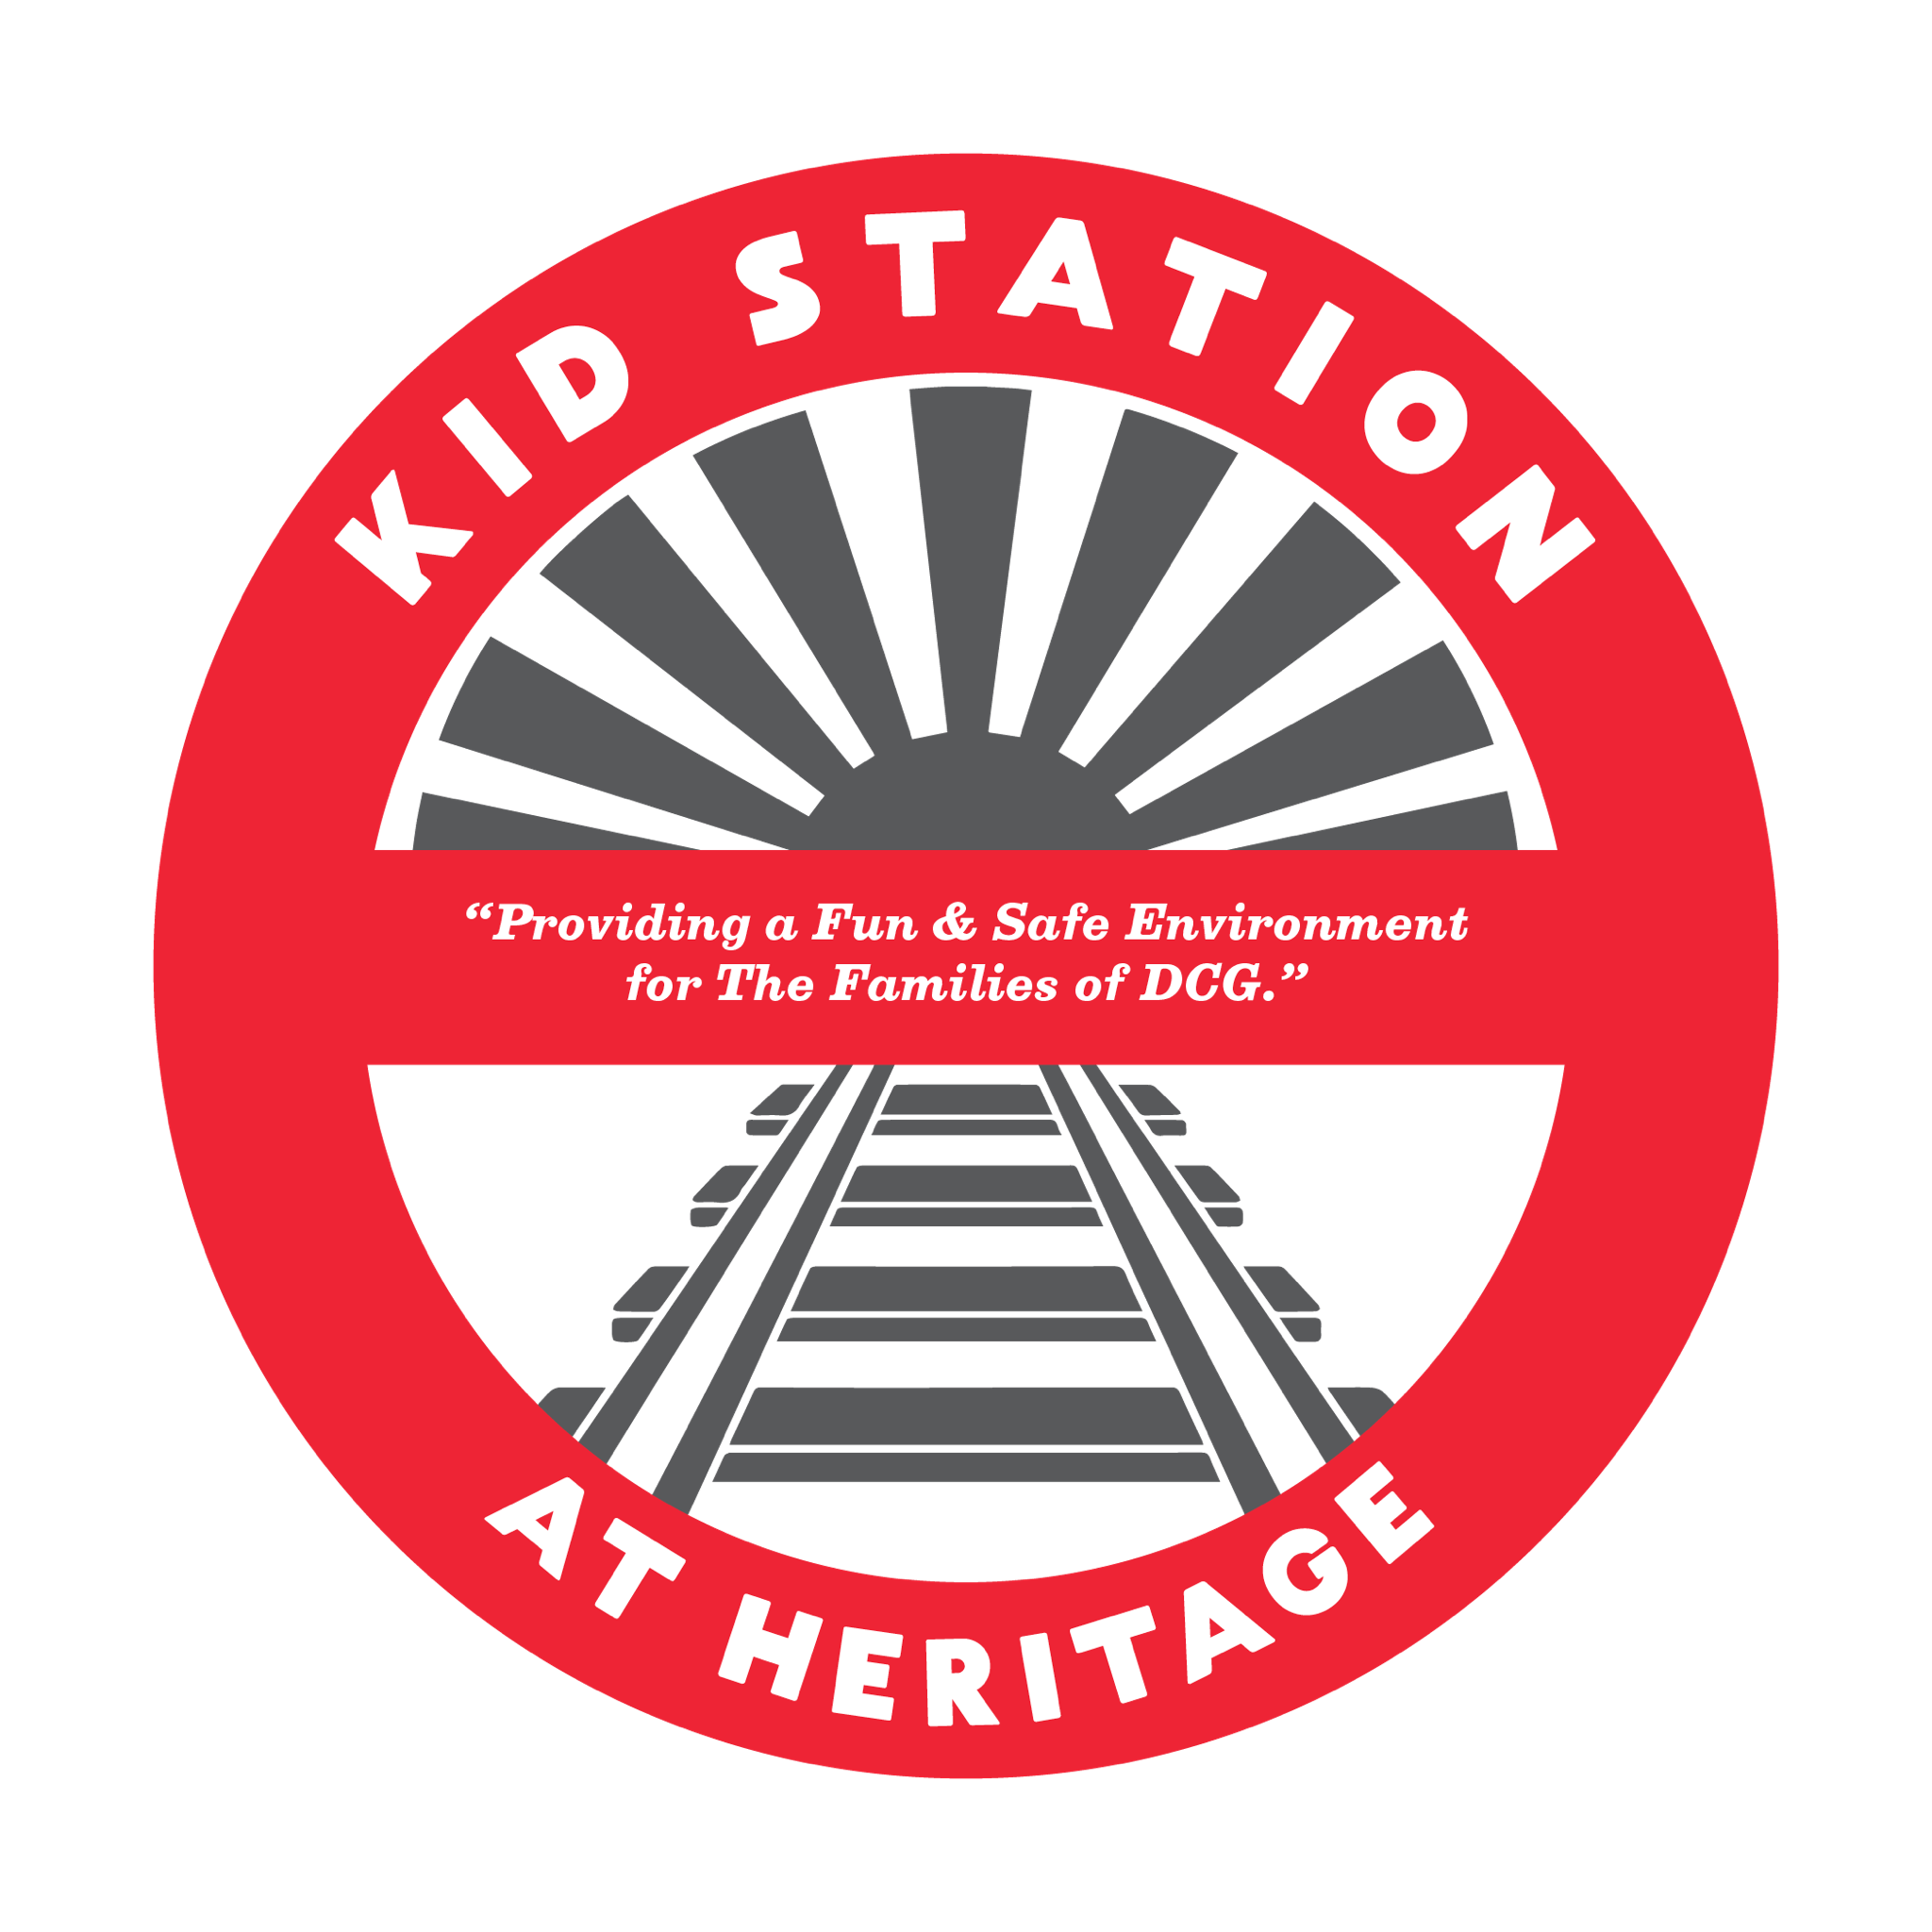 Kid Station @ Hertiage.png